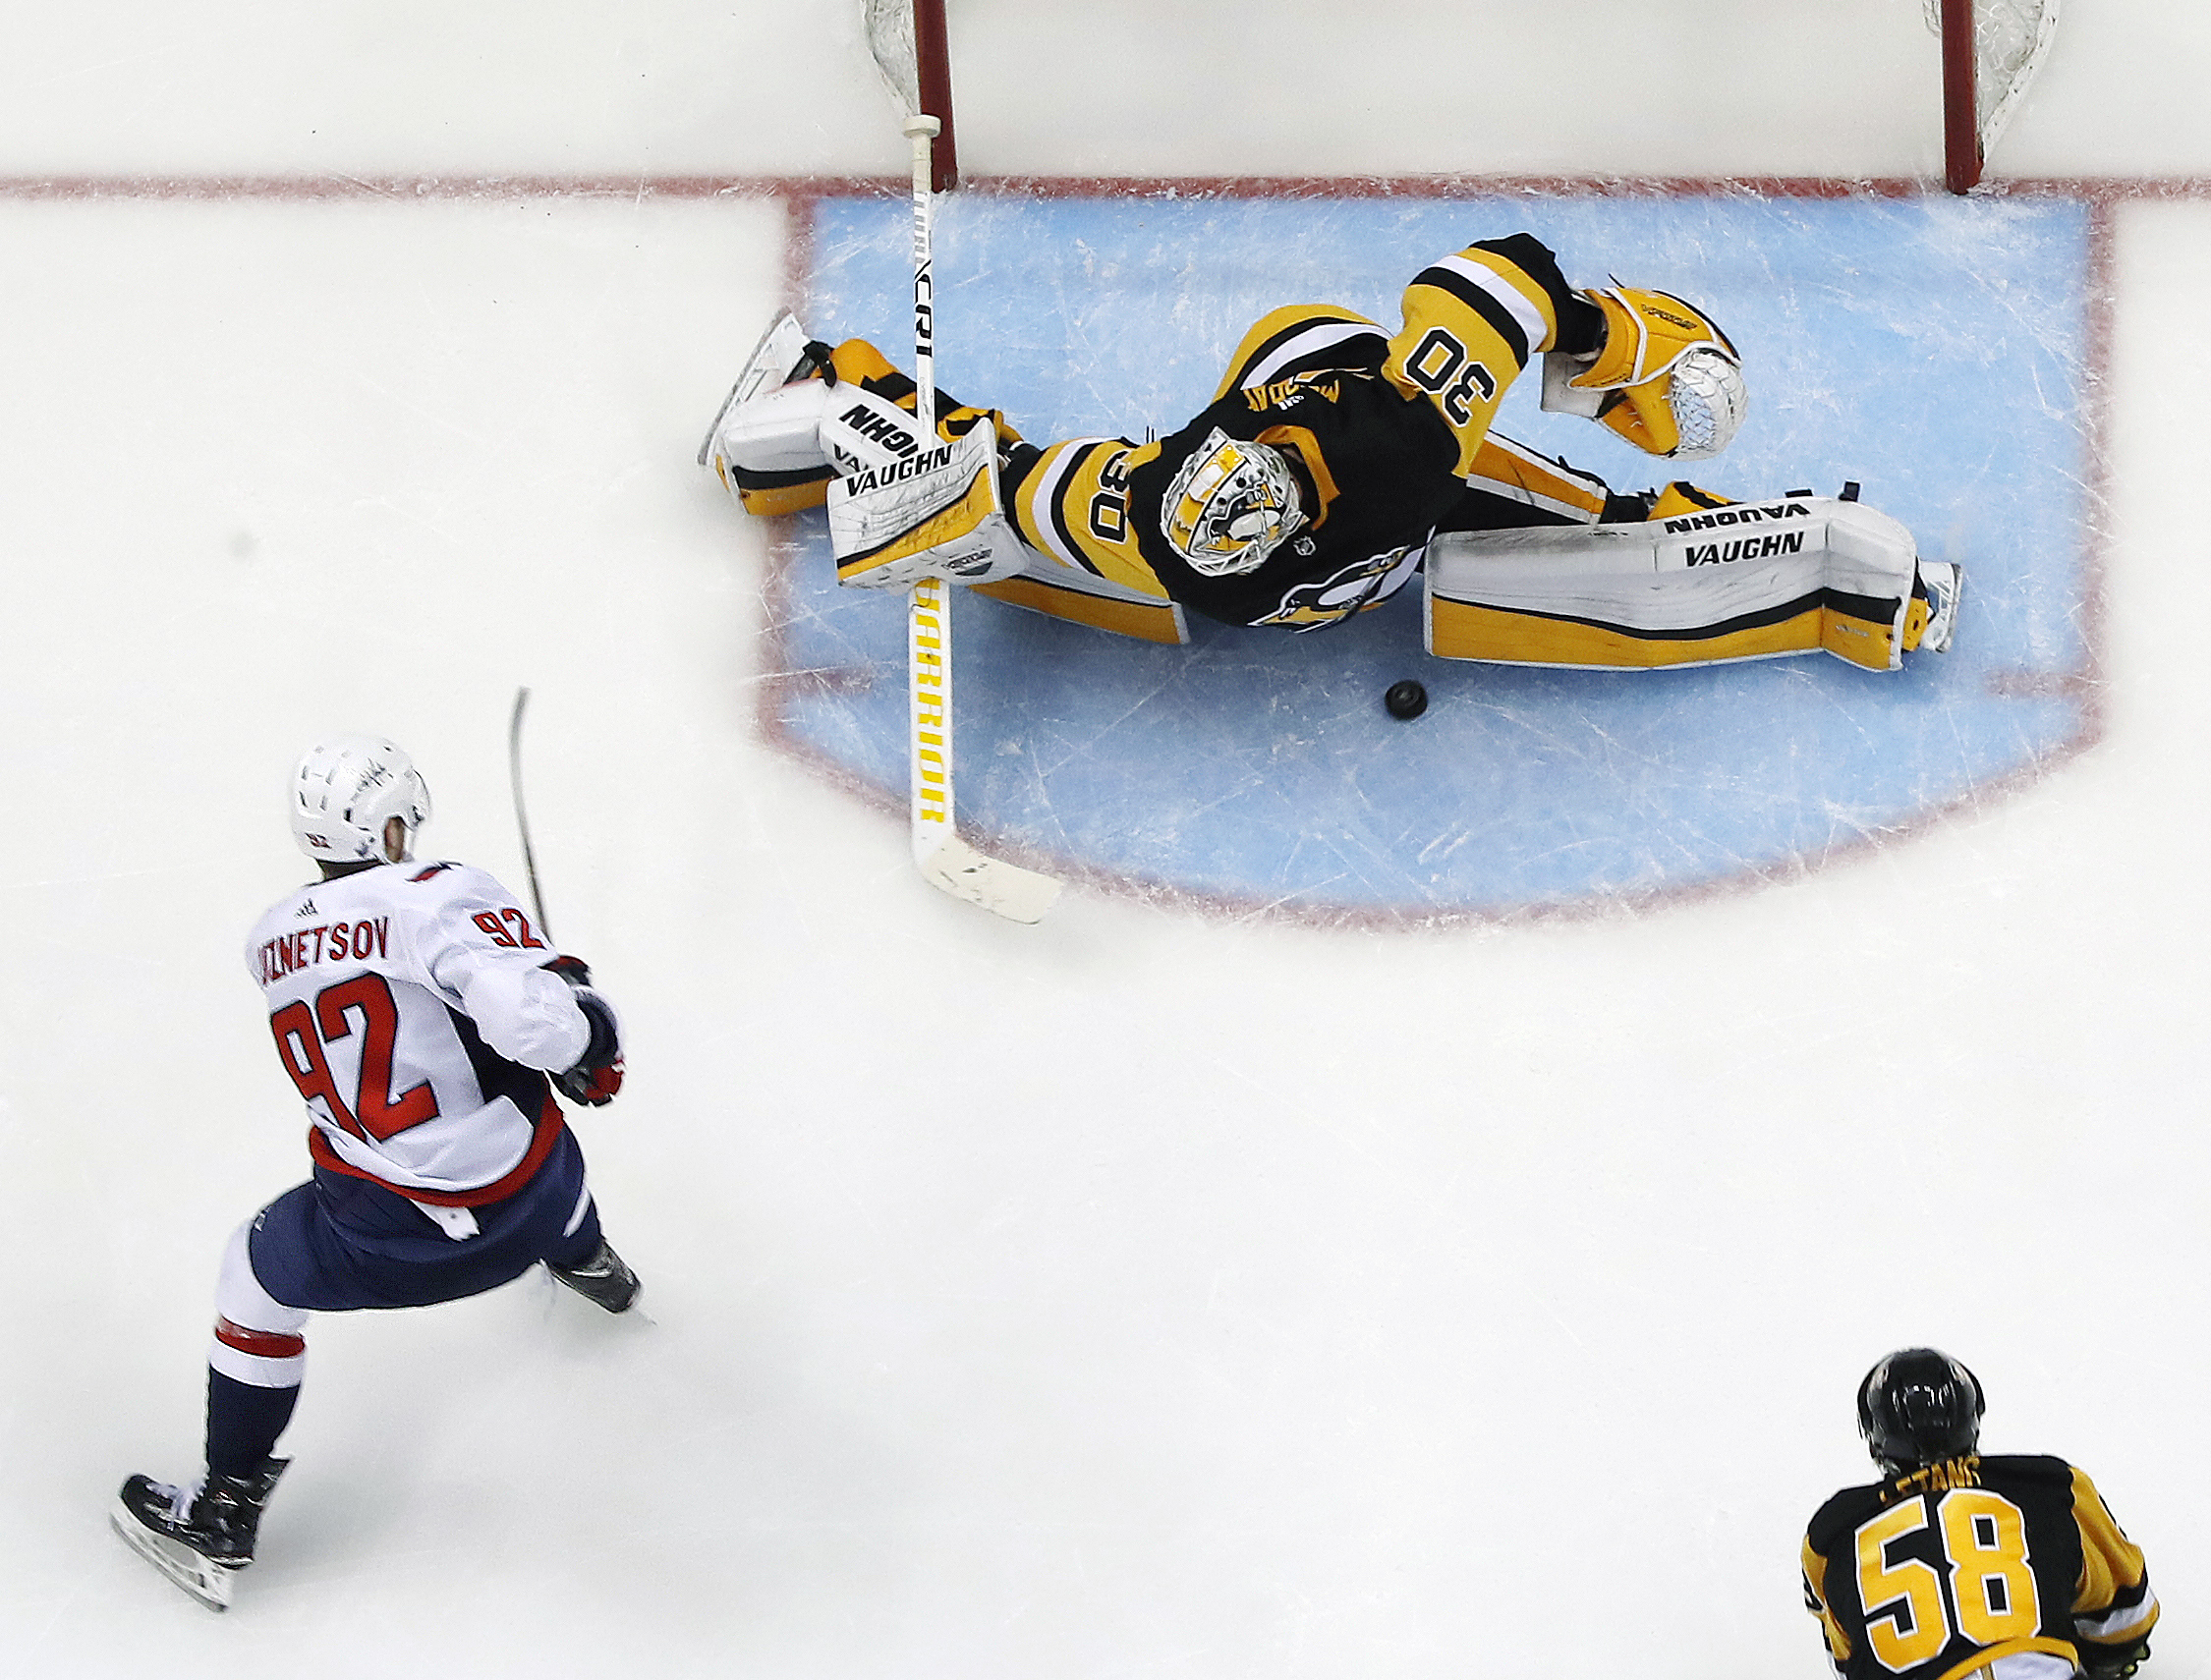 Capitals´ Evgeny Kuznetsov (left) gets the game-winning goal between the pads of Pittsburgh Penguins goaltender Matt Murray (center) during the overtime period of the Penguins Game 6 loss.